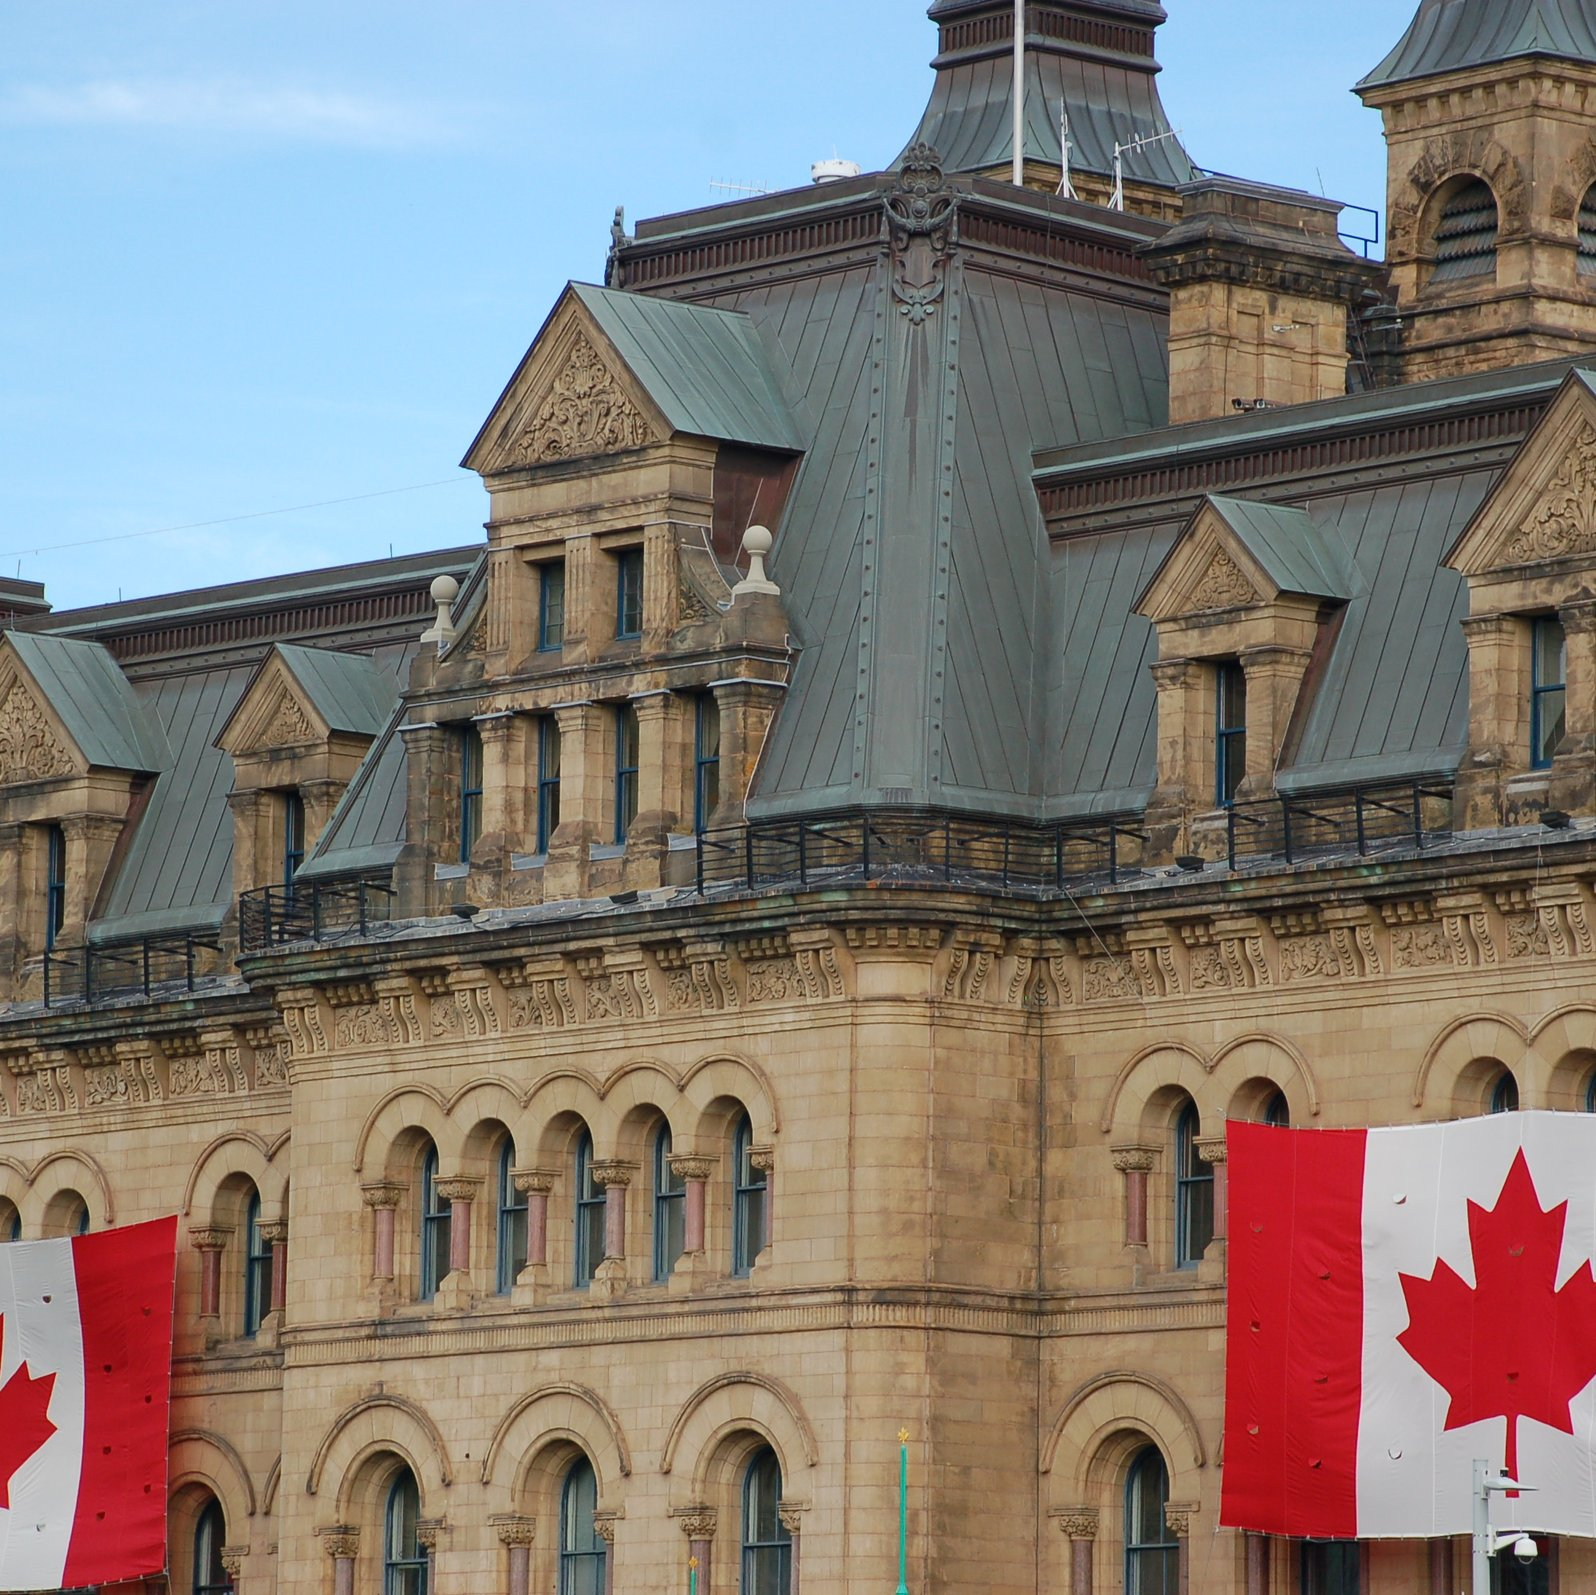 Canada flags hanging on concrete castle wall